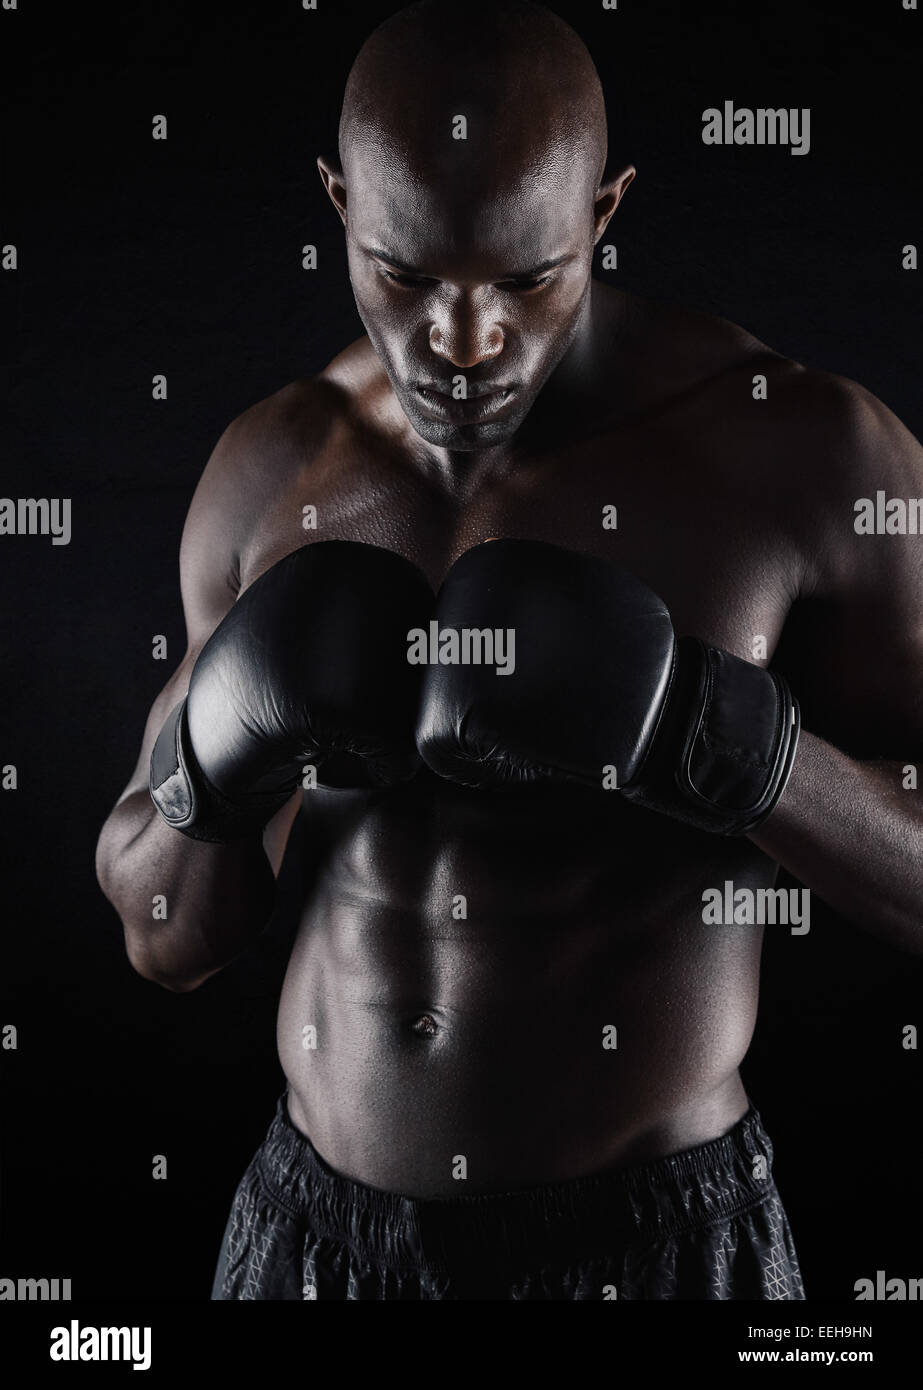 Fit young man wearing boxing gloves on black background. Professional boxer preparing for fight. - Stock Image